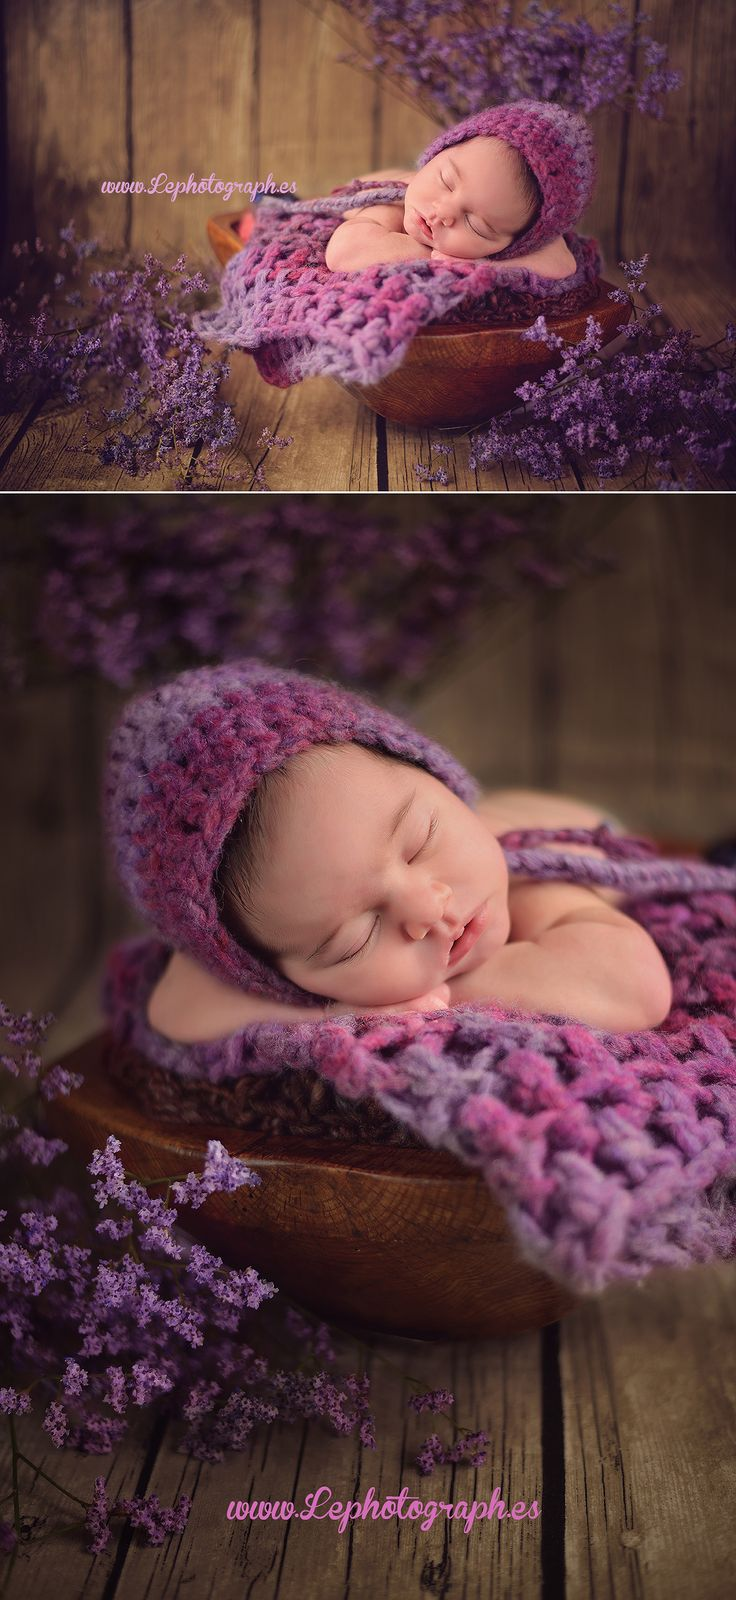 Newborn photography: Set up with lavender and purple flowers for a baby girl.   Fotografía de recien nacidos: Setup con flores lilas para una niña  www.lephotograph.es